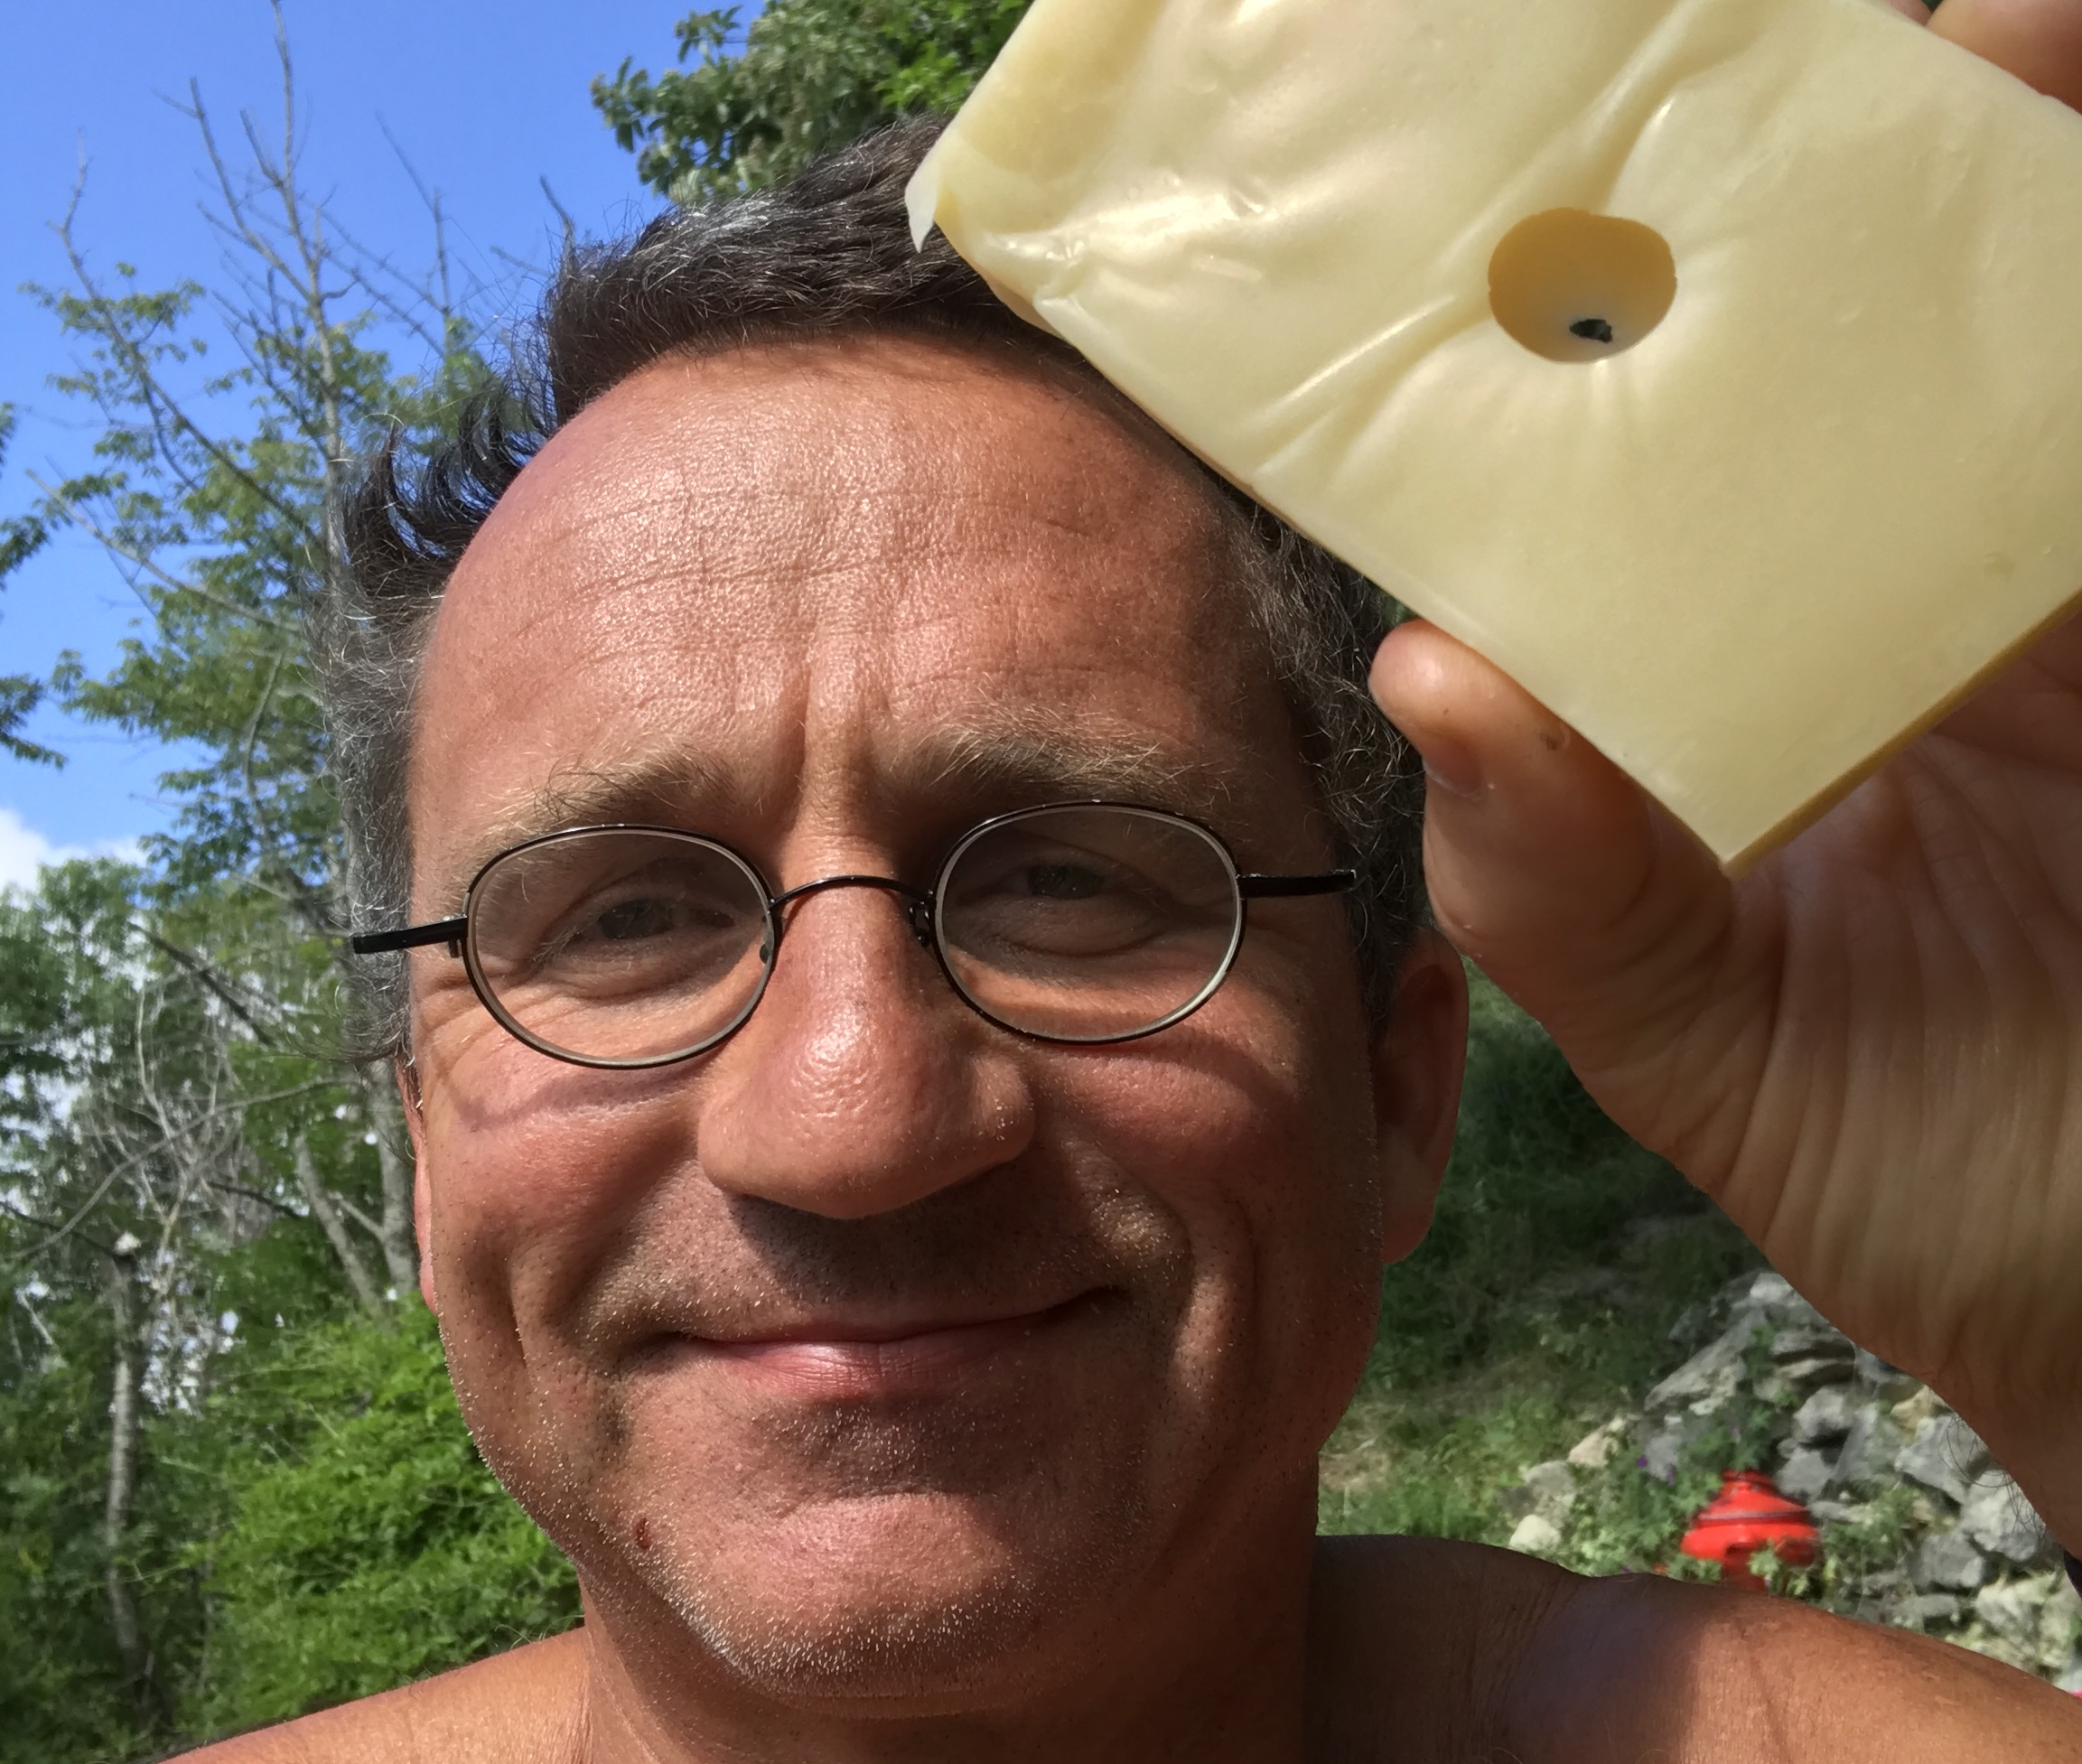 Swiss cheese proof. Picture taken in Switzerland on Salmenfee in the Swiss alps, where the proof was finalized